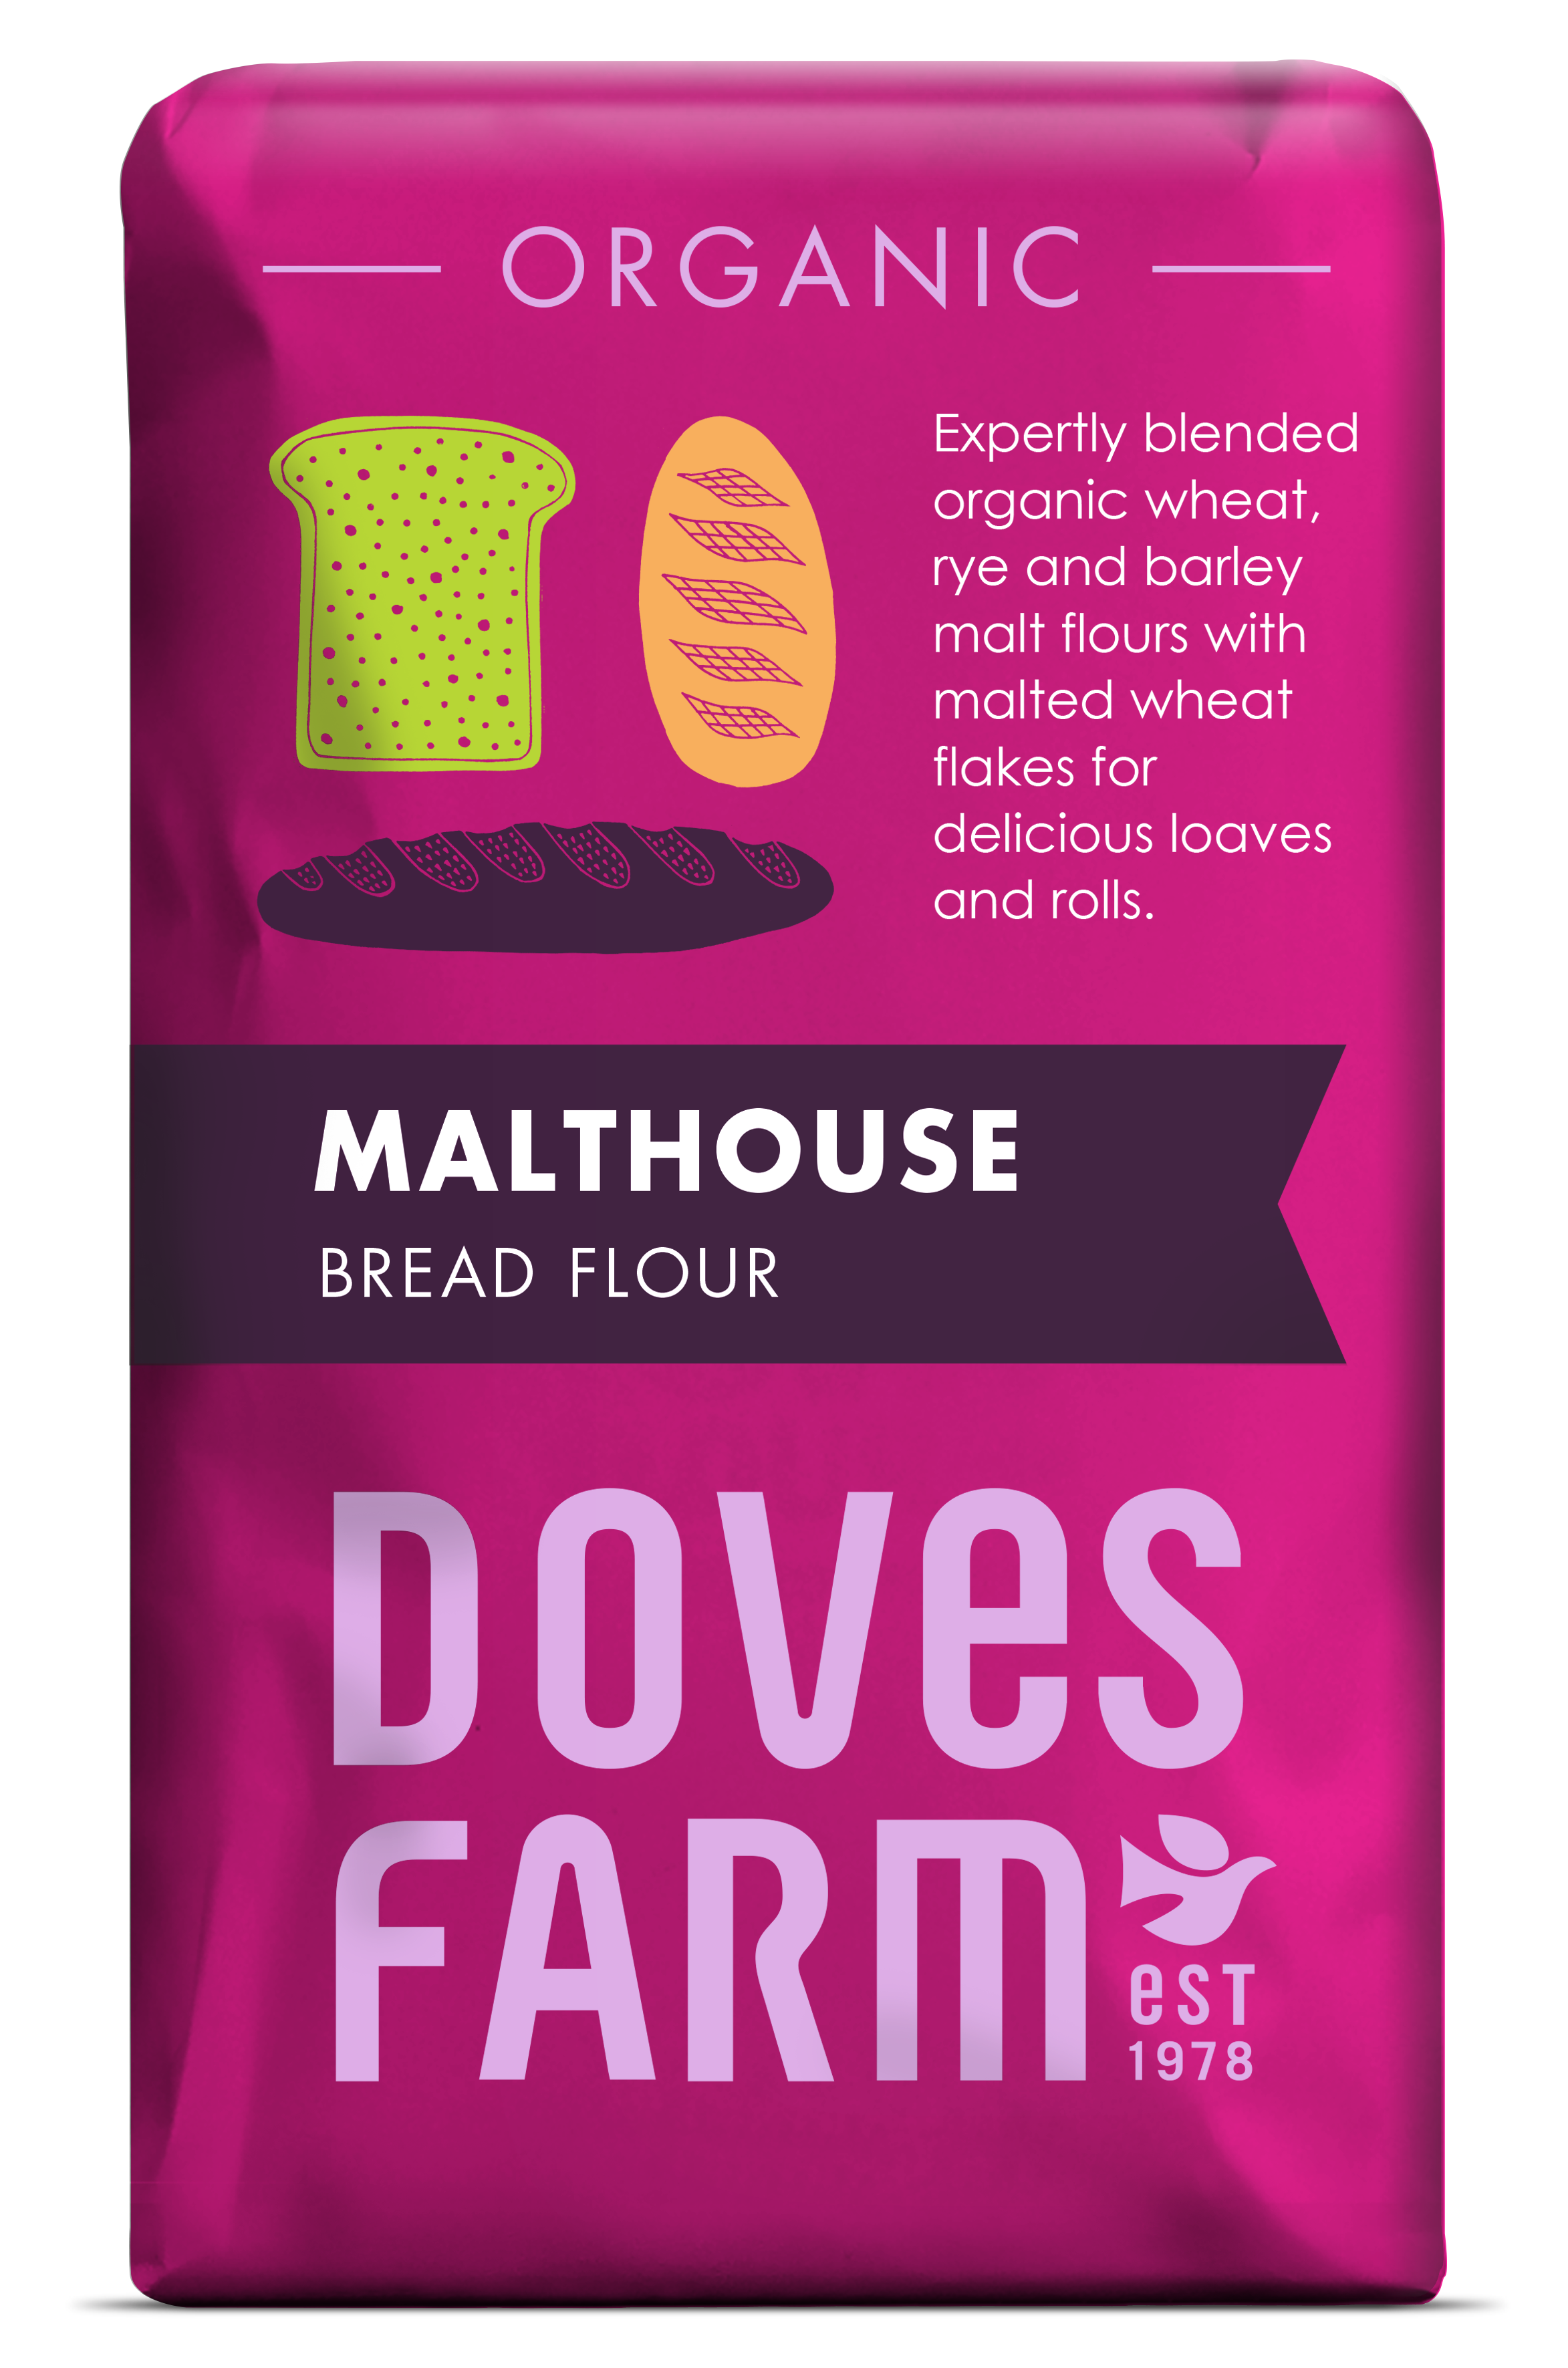 Doves Farm - Organic Bread Malthouse Flour 1kg - Flour 2 Door